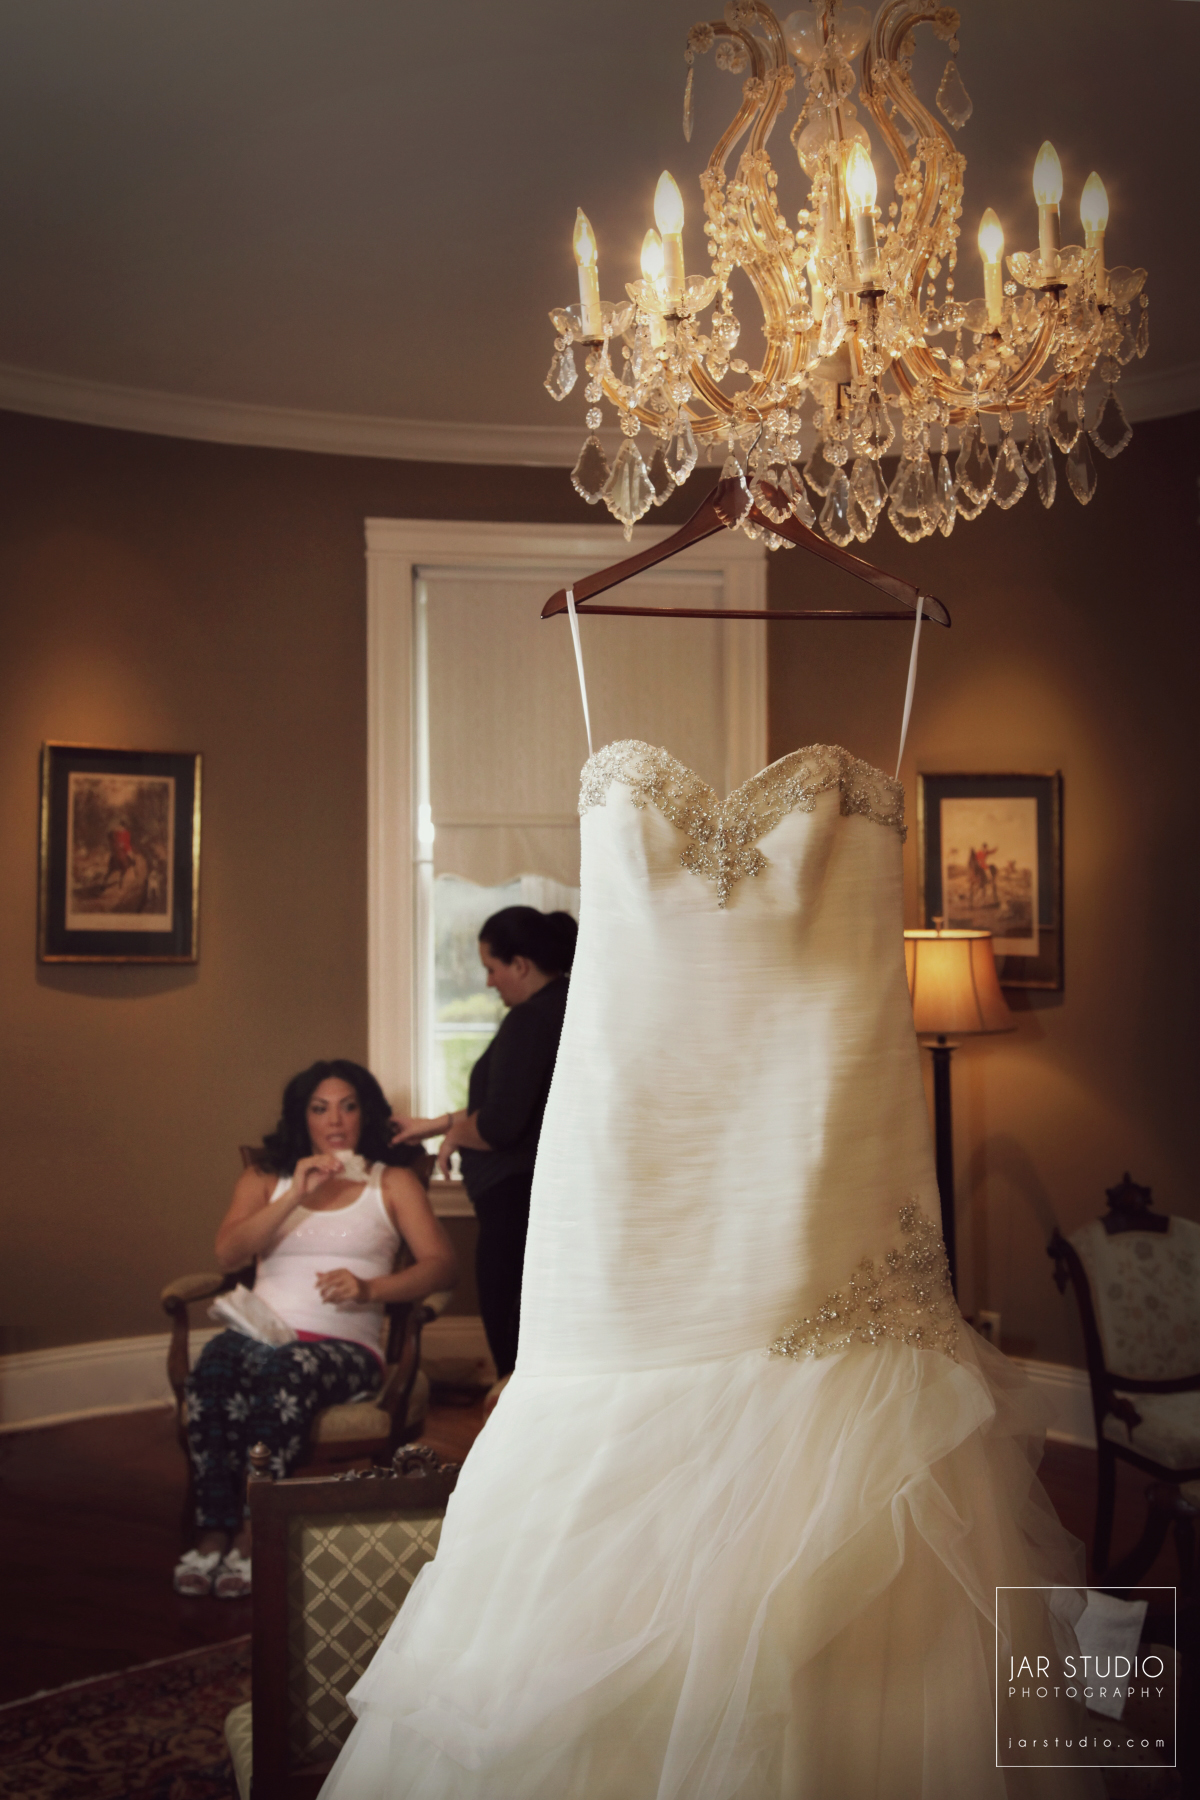 10-wedding-dress-dr-phillips-house-victorian-house-jarstudio-photography.JPG